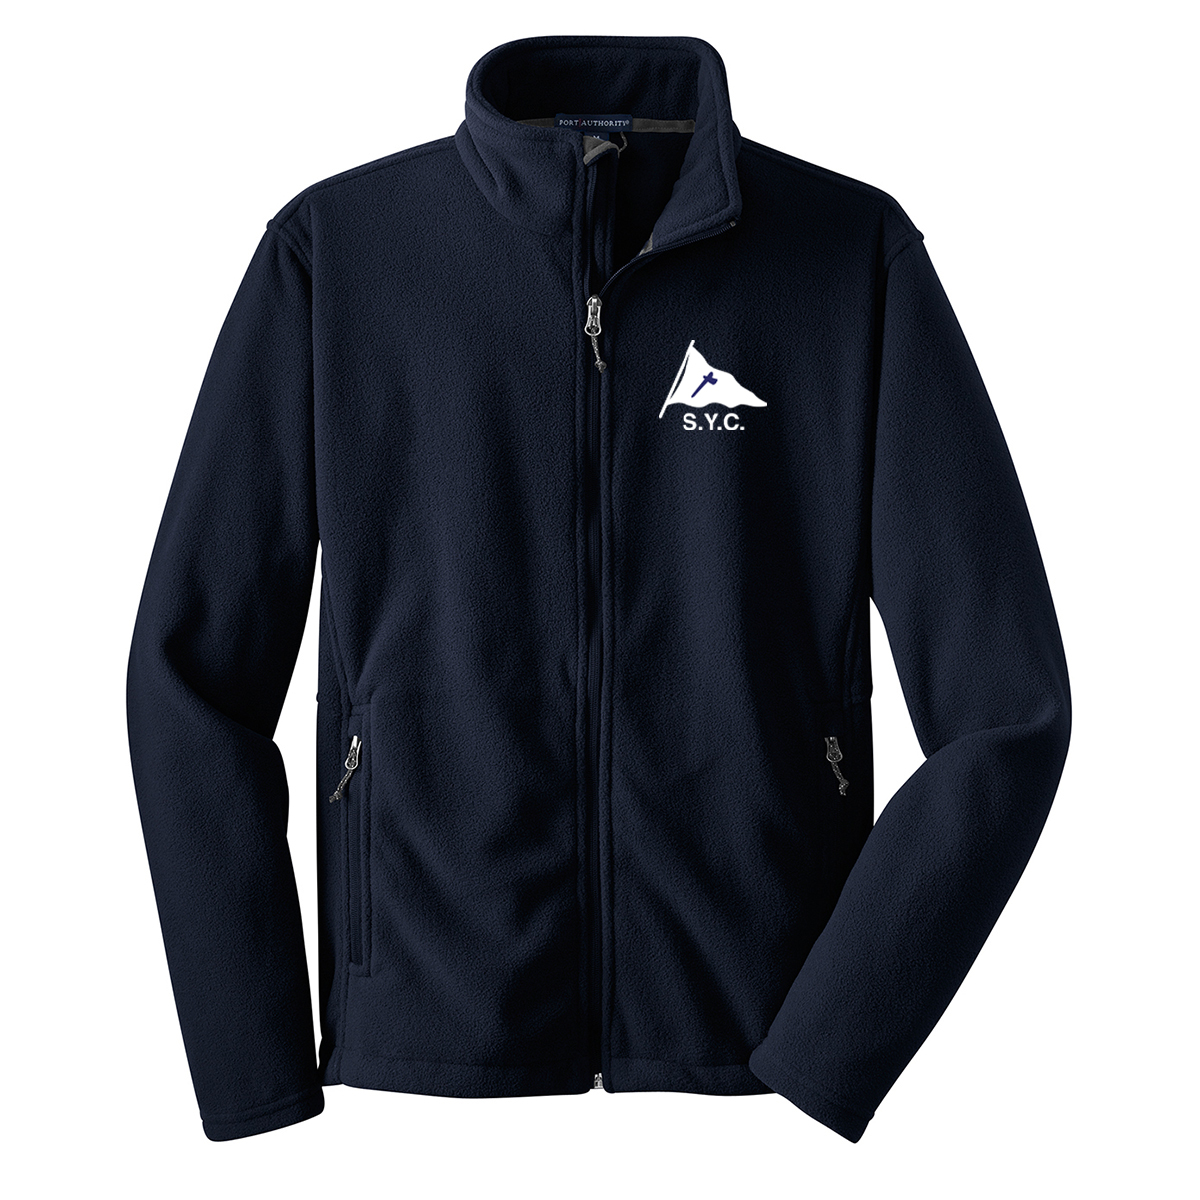 SQUANTUM YC - PA WOMEN'S FLEECE JACKET